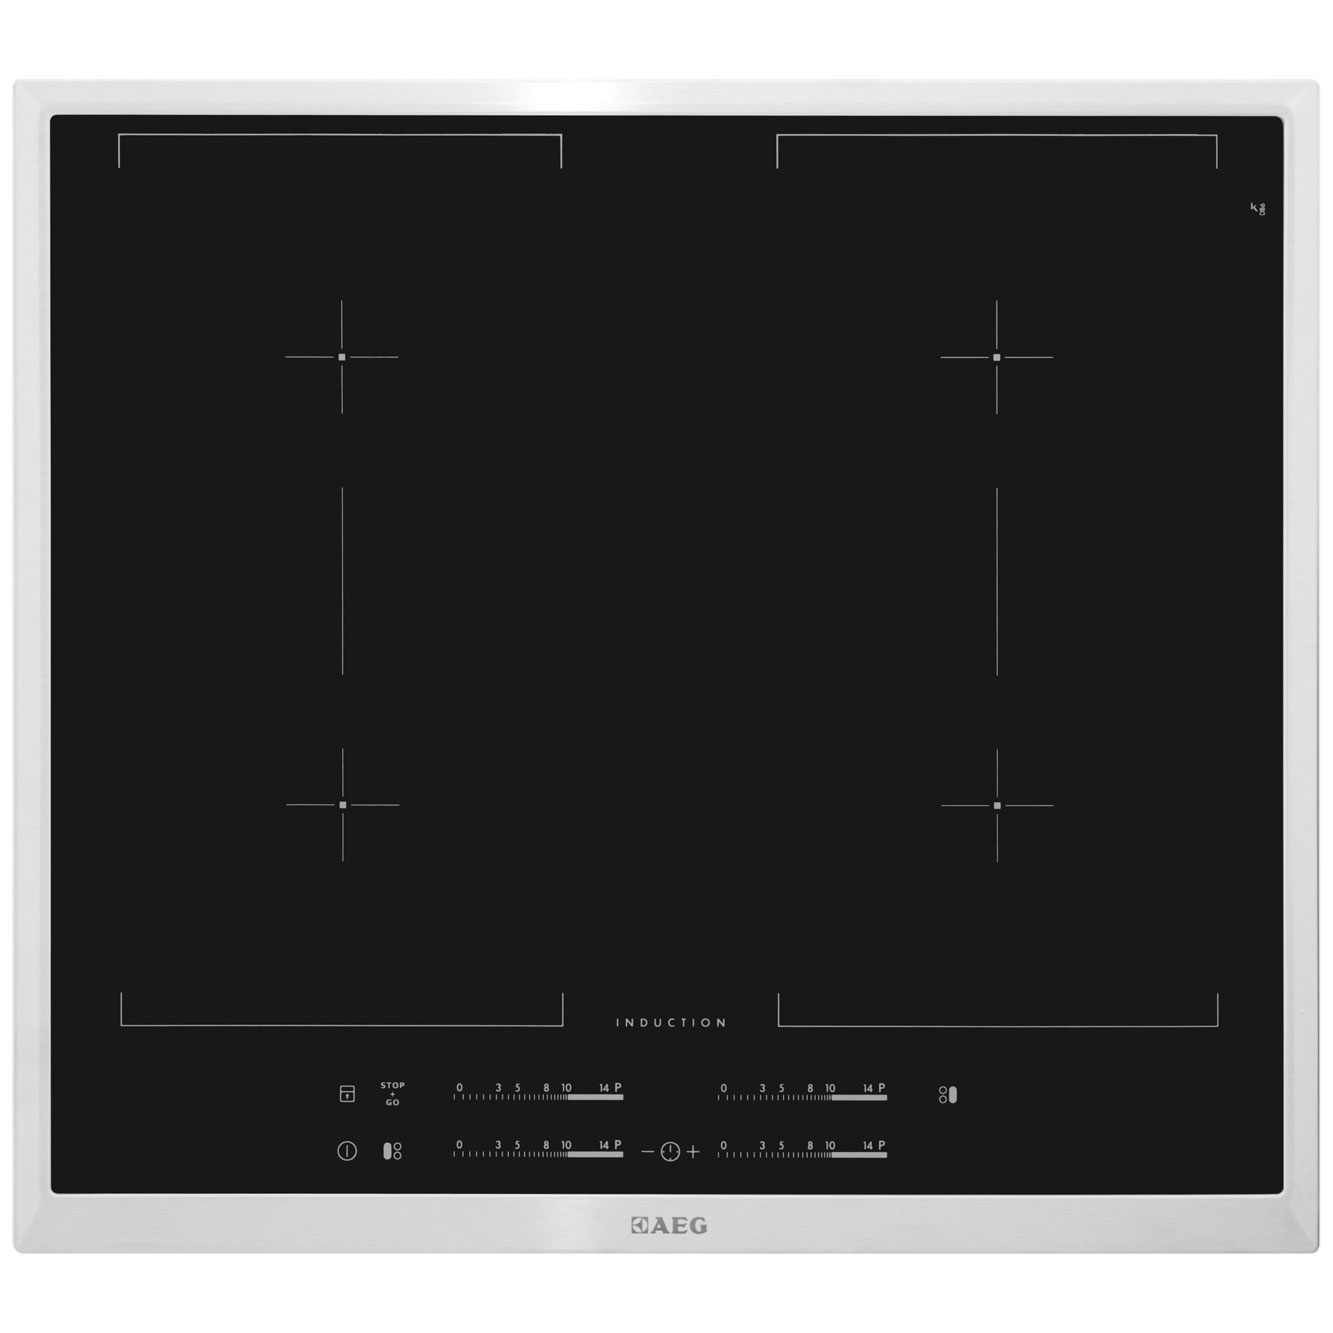 AEG Competence HK654400XB 58cm Induction Hob - Black / Stainless Steel